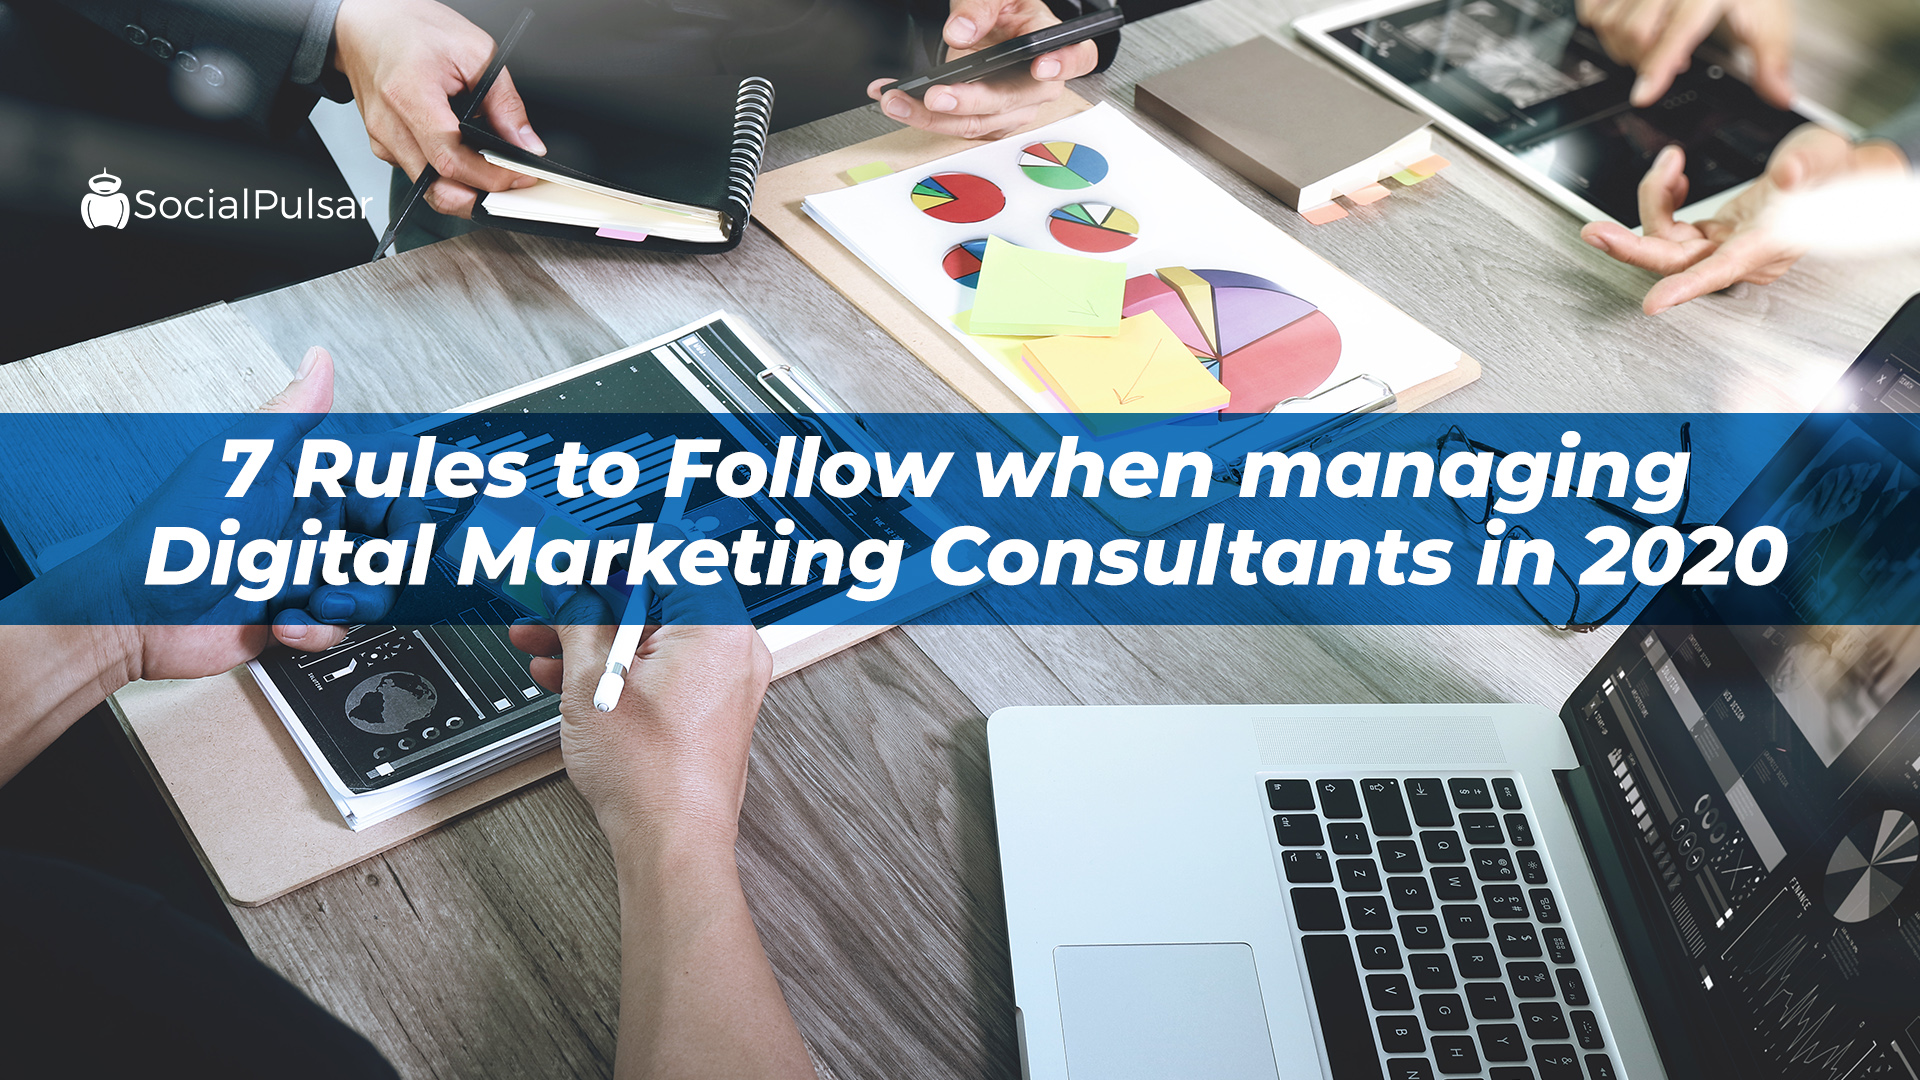 7 Rules To Follow When Managing Digital Marketing Consultants In 2020